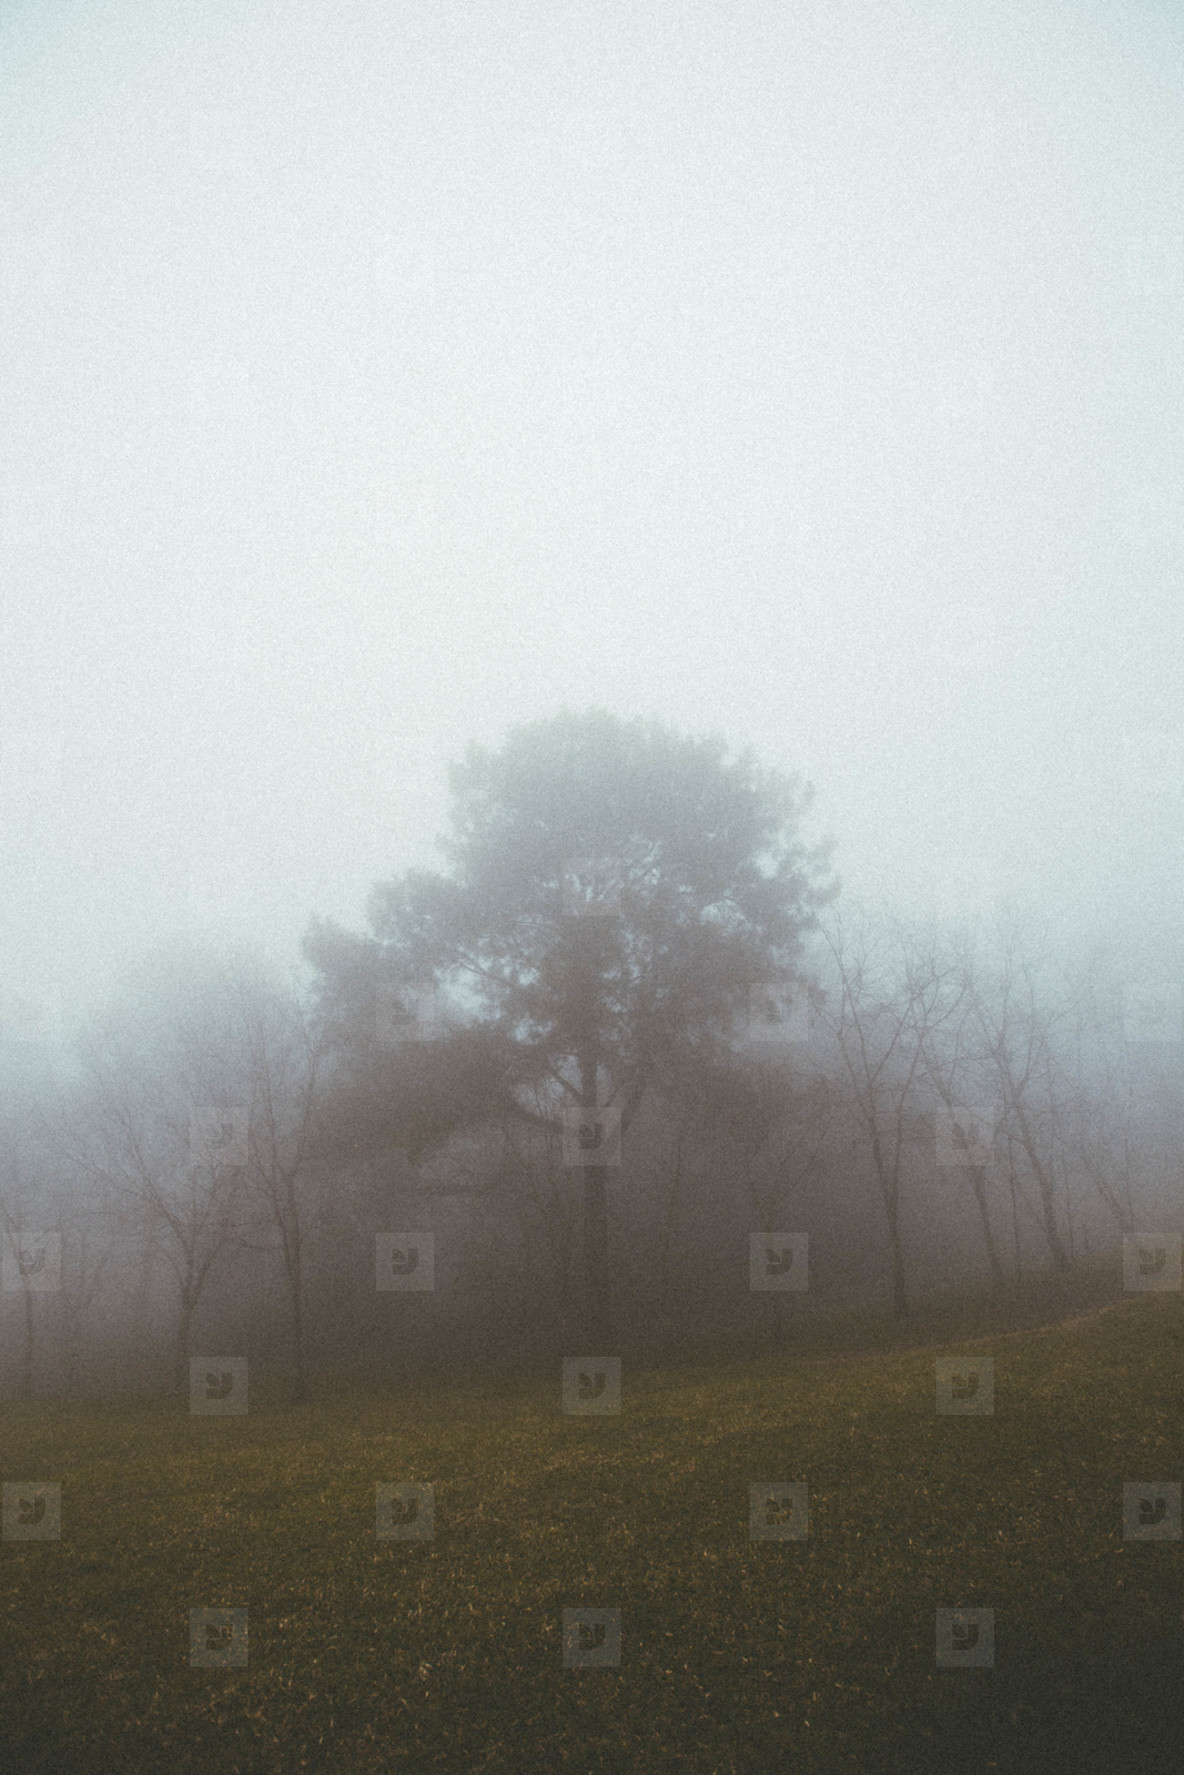 Misty foggy forest